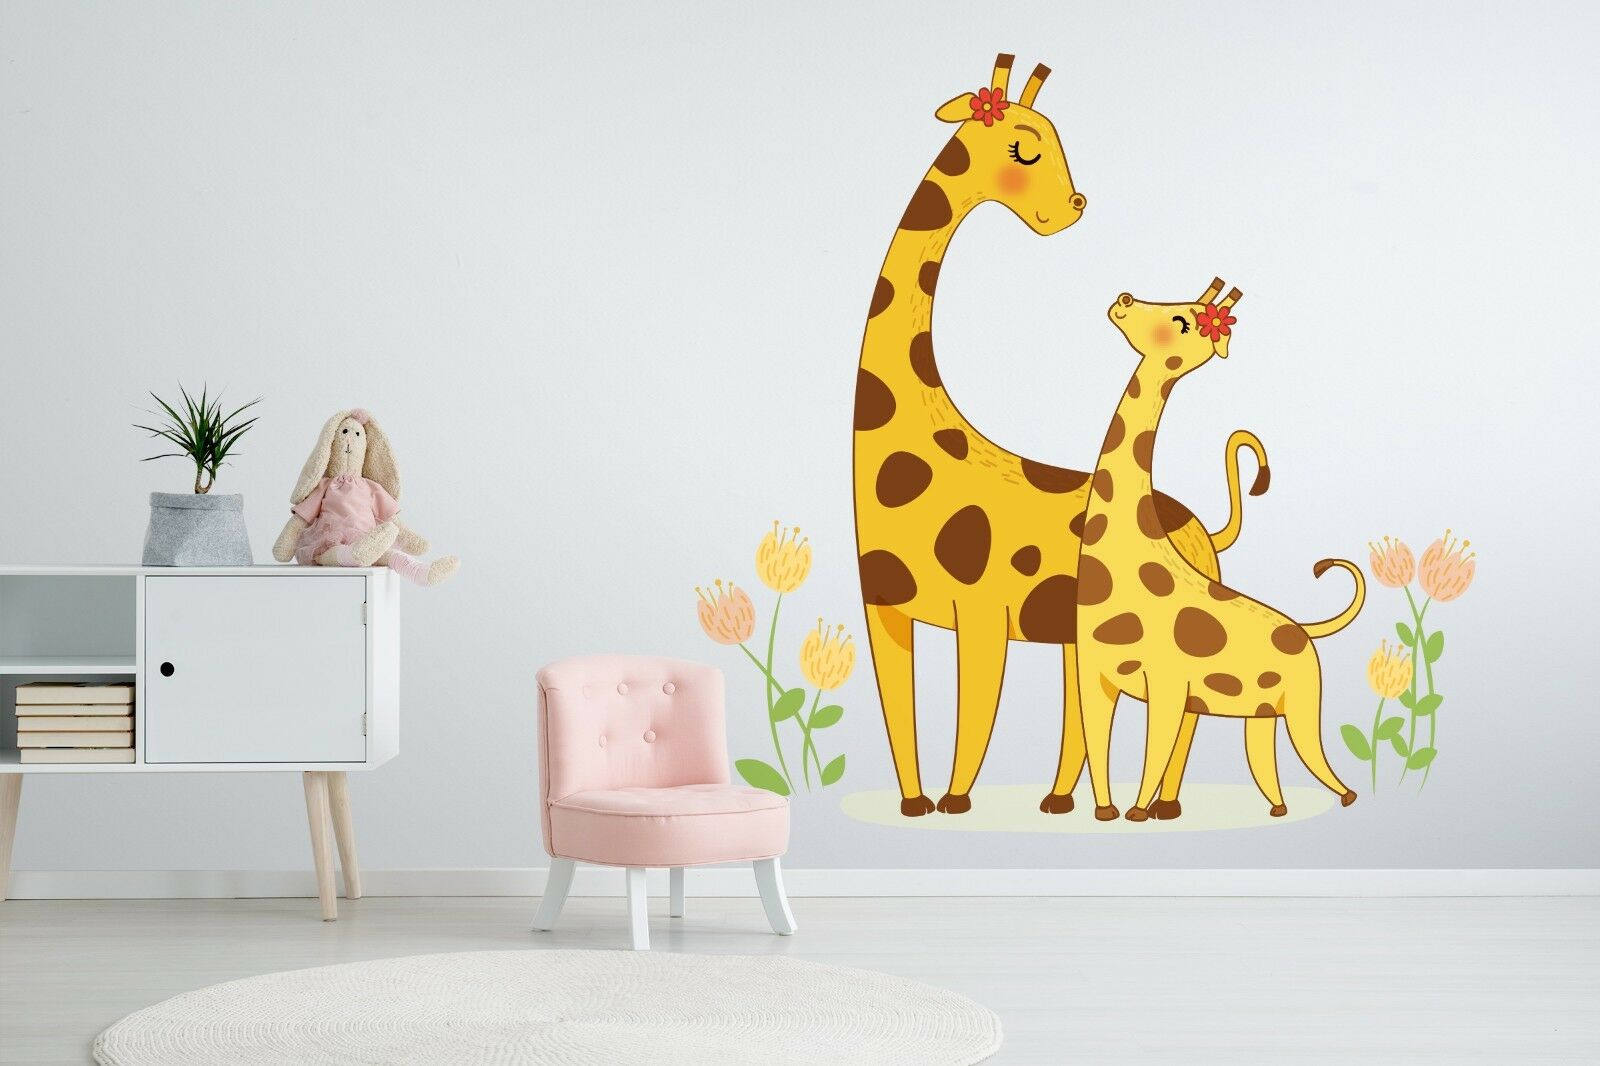 3D Cartoon Giraffe 864 Wallpaper Murals Floor Wall Print Decal Wall Sticker